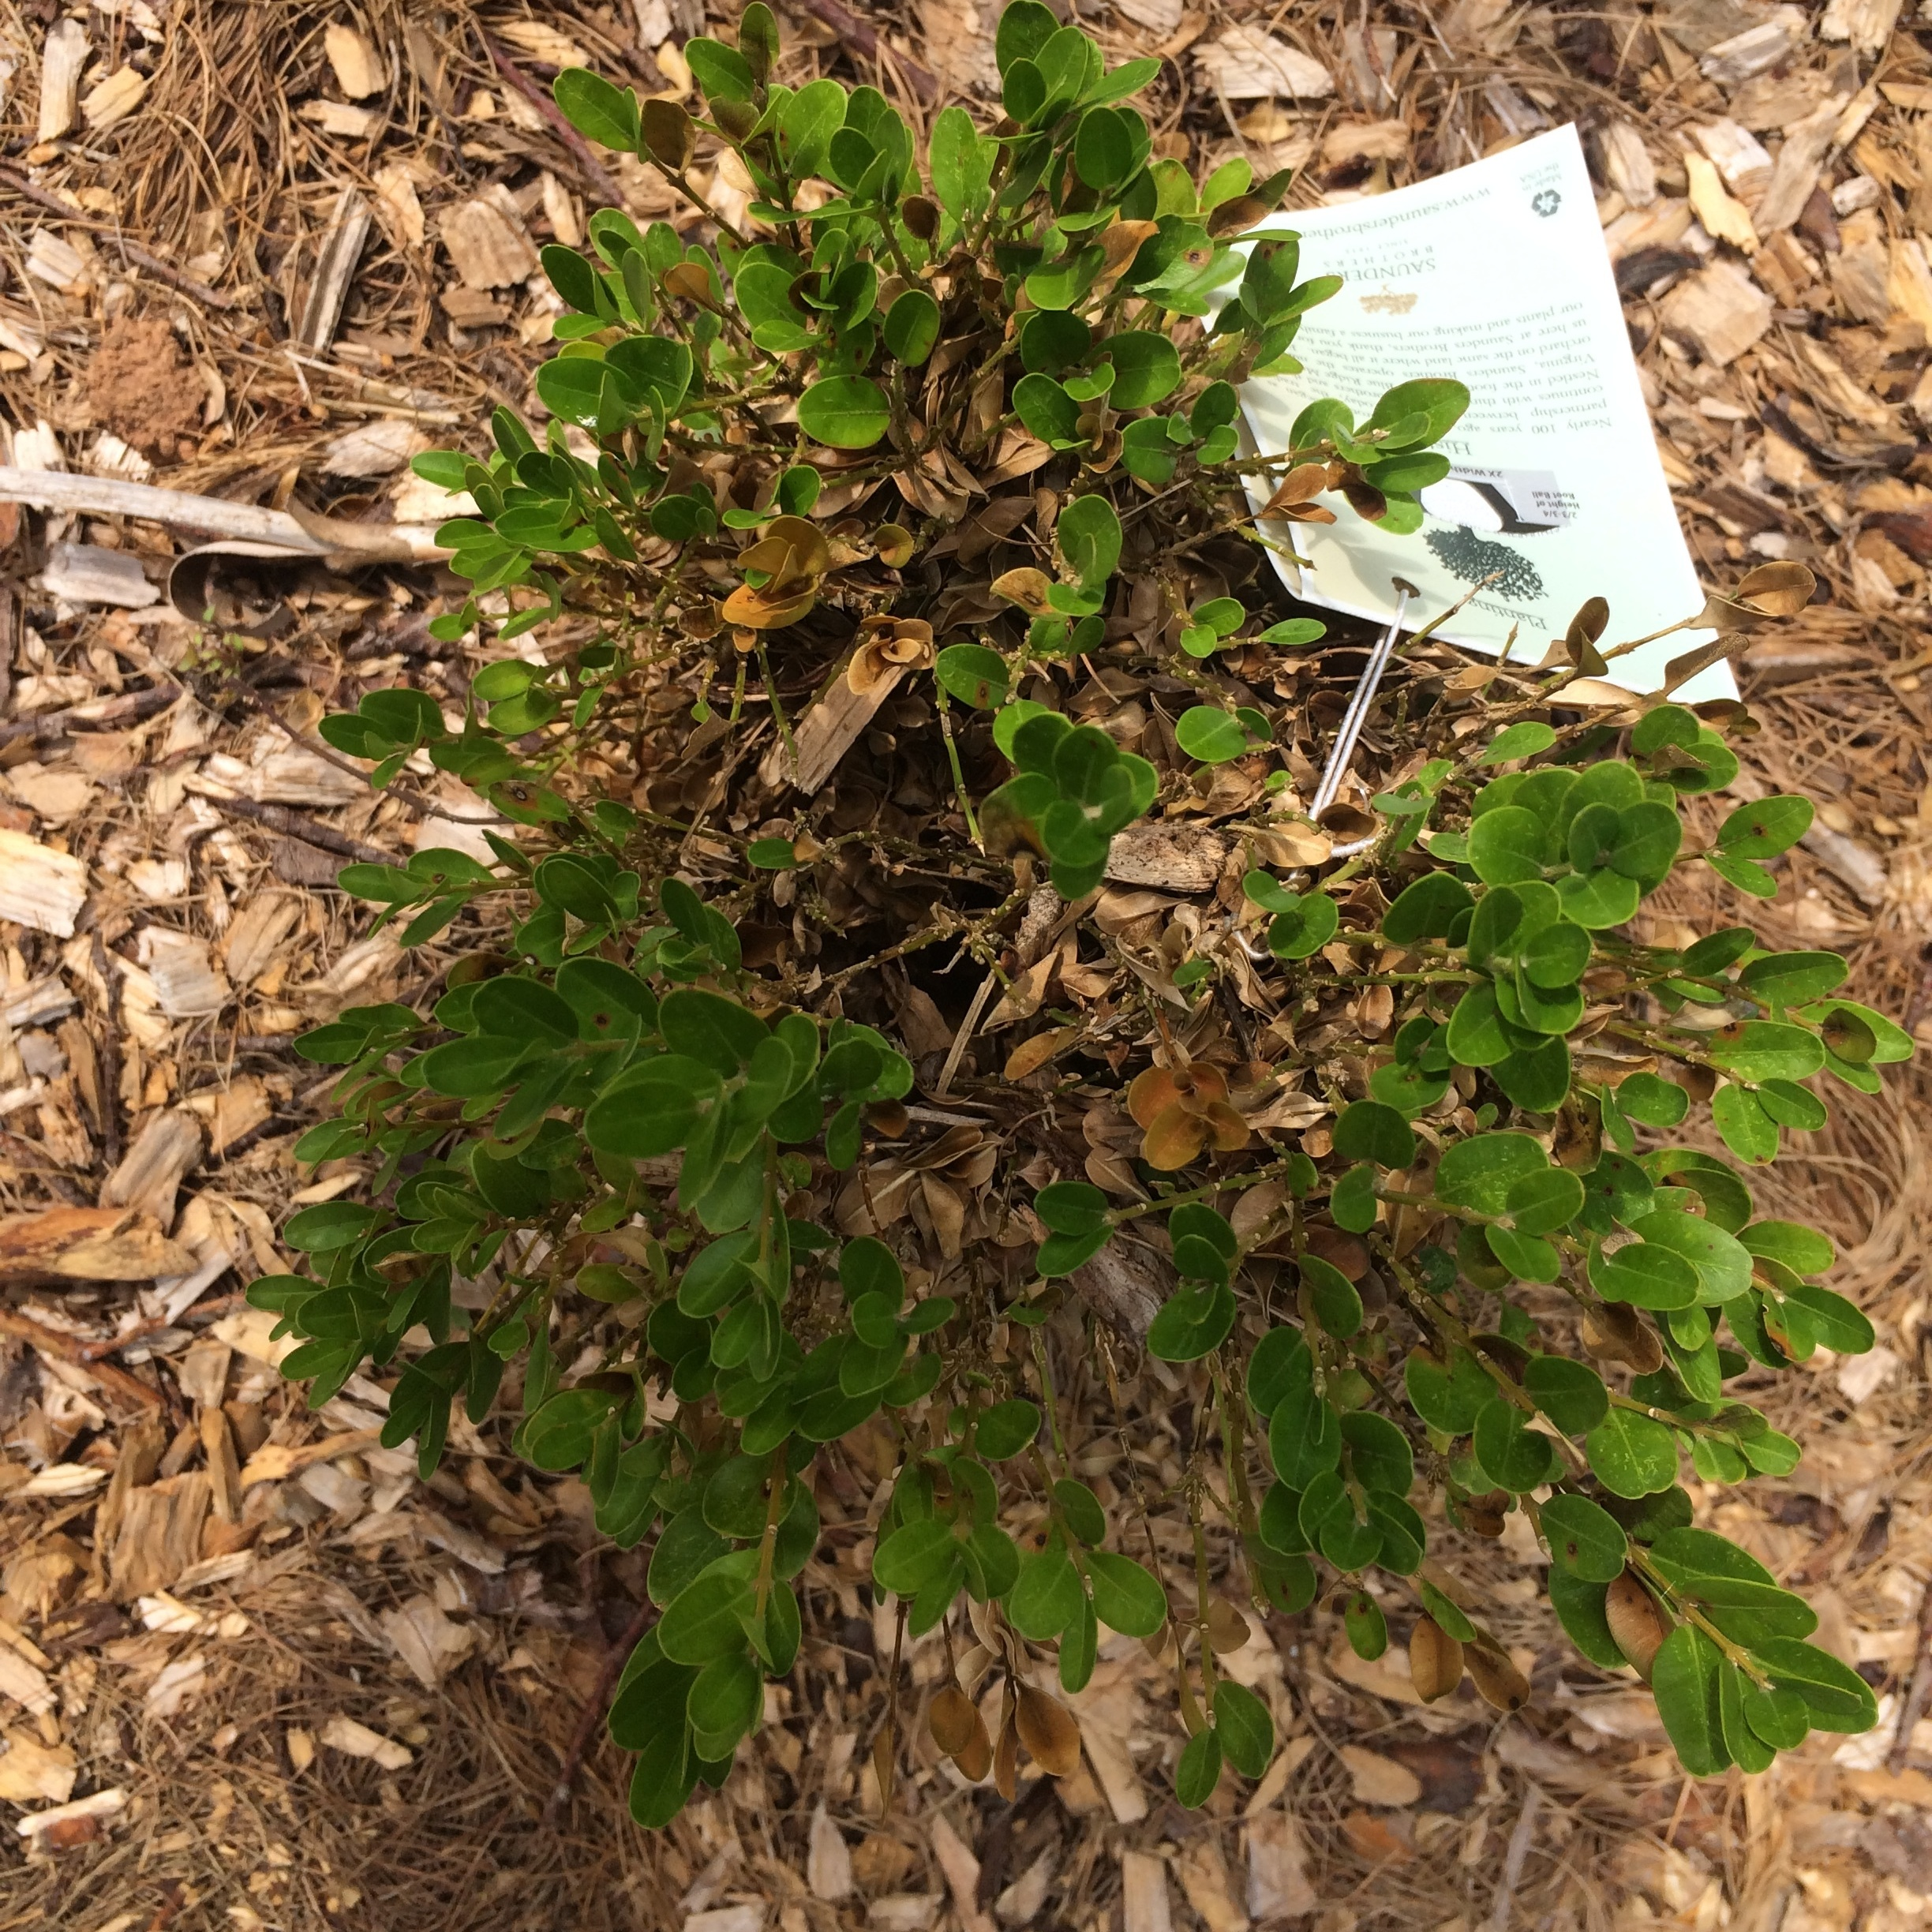 Boxwood Blight typically starts at the bottom/middle of the plant and spreads as the spores move throughout the plant.